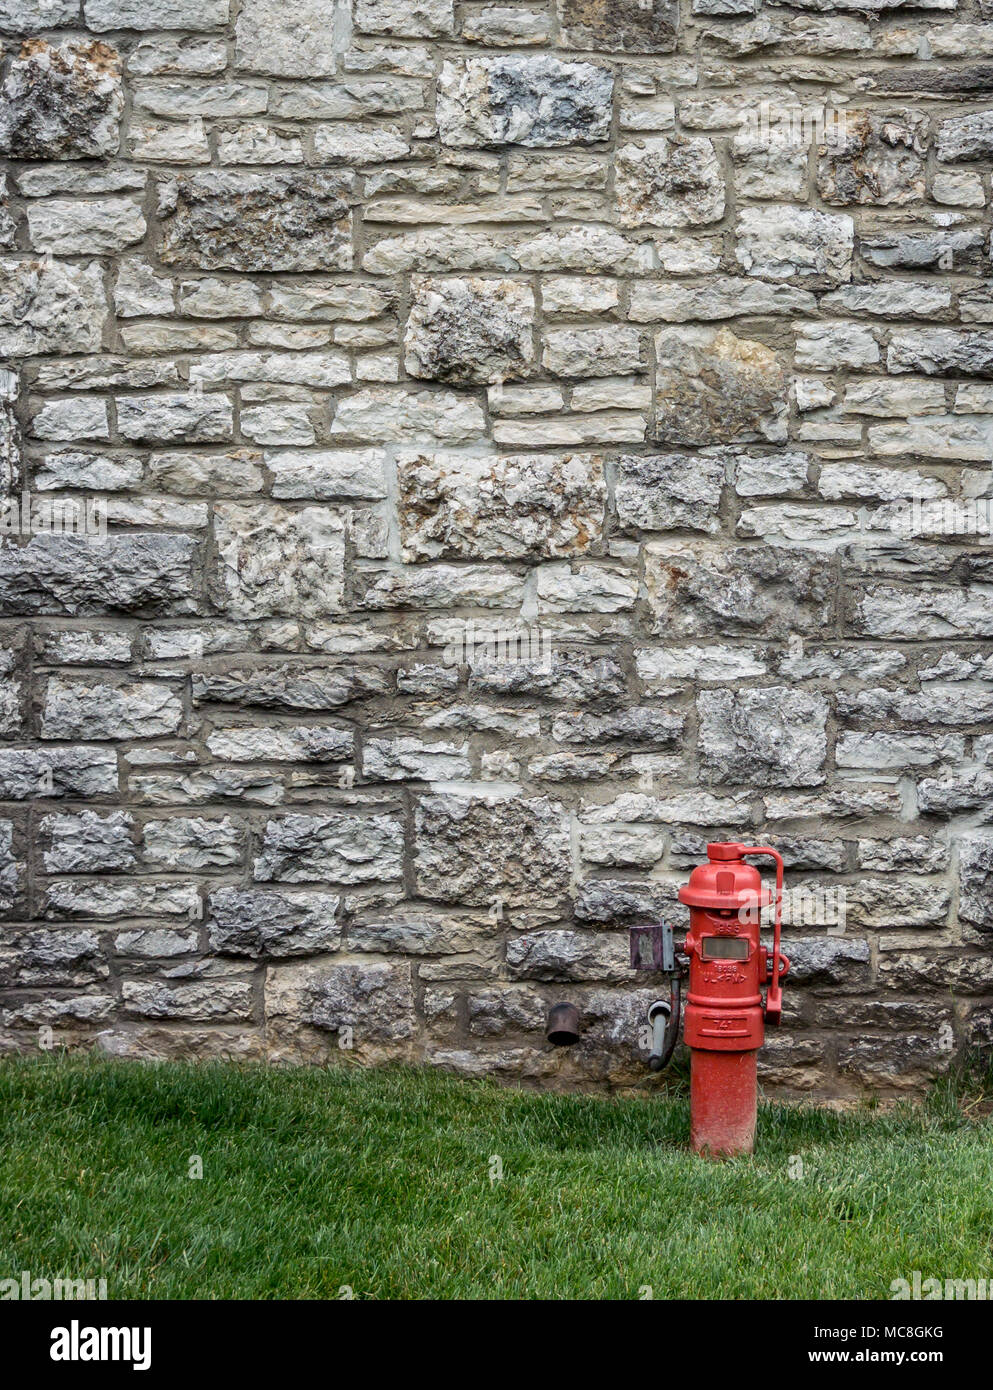 A red fire hydrant contrasts against an aged stone wall at a distillery along the bourbon trail - Stock Image